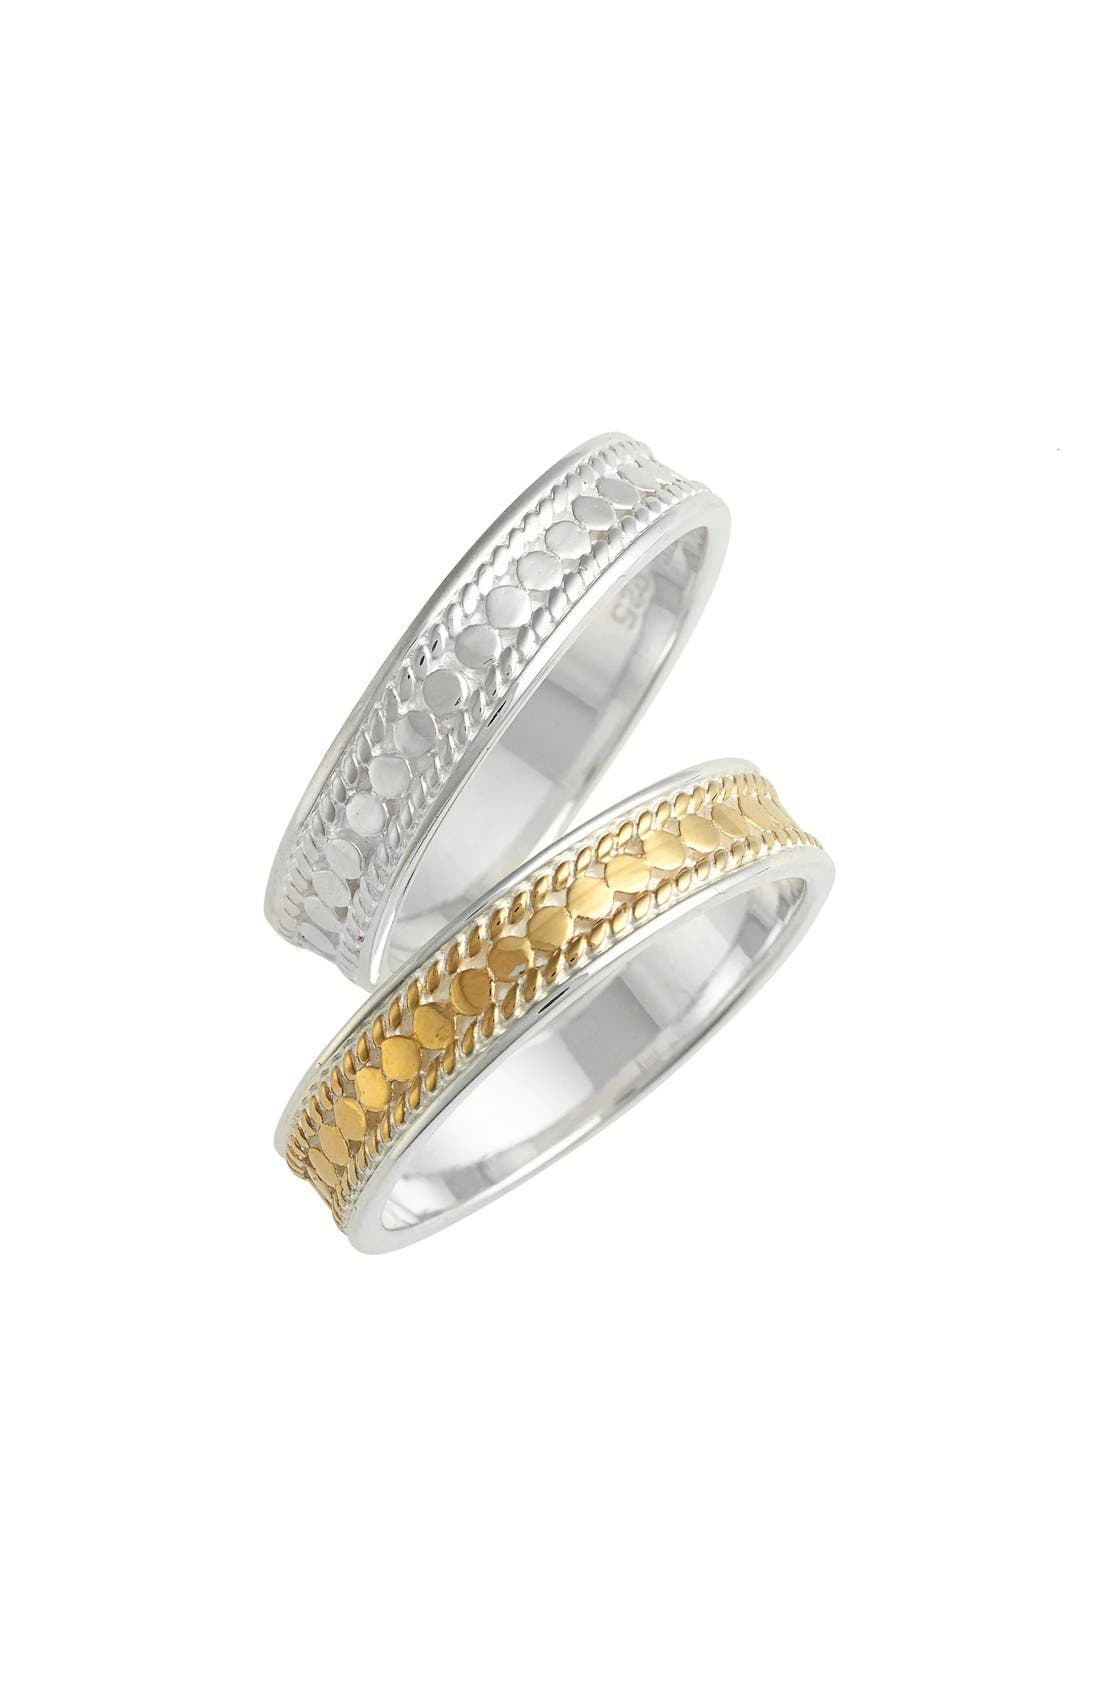 Main Image - Anna Beck Two-Tone Stacking Rings (Set of 2)